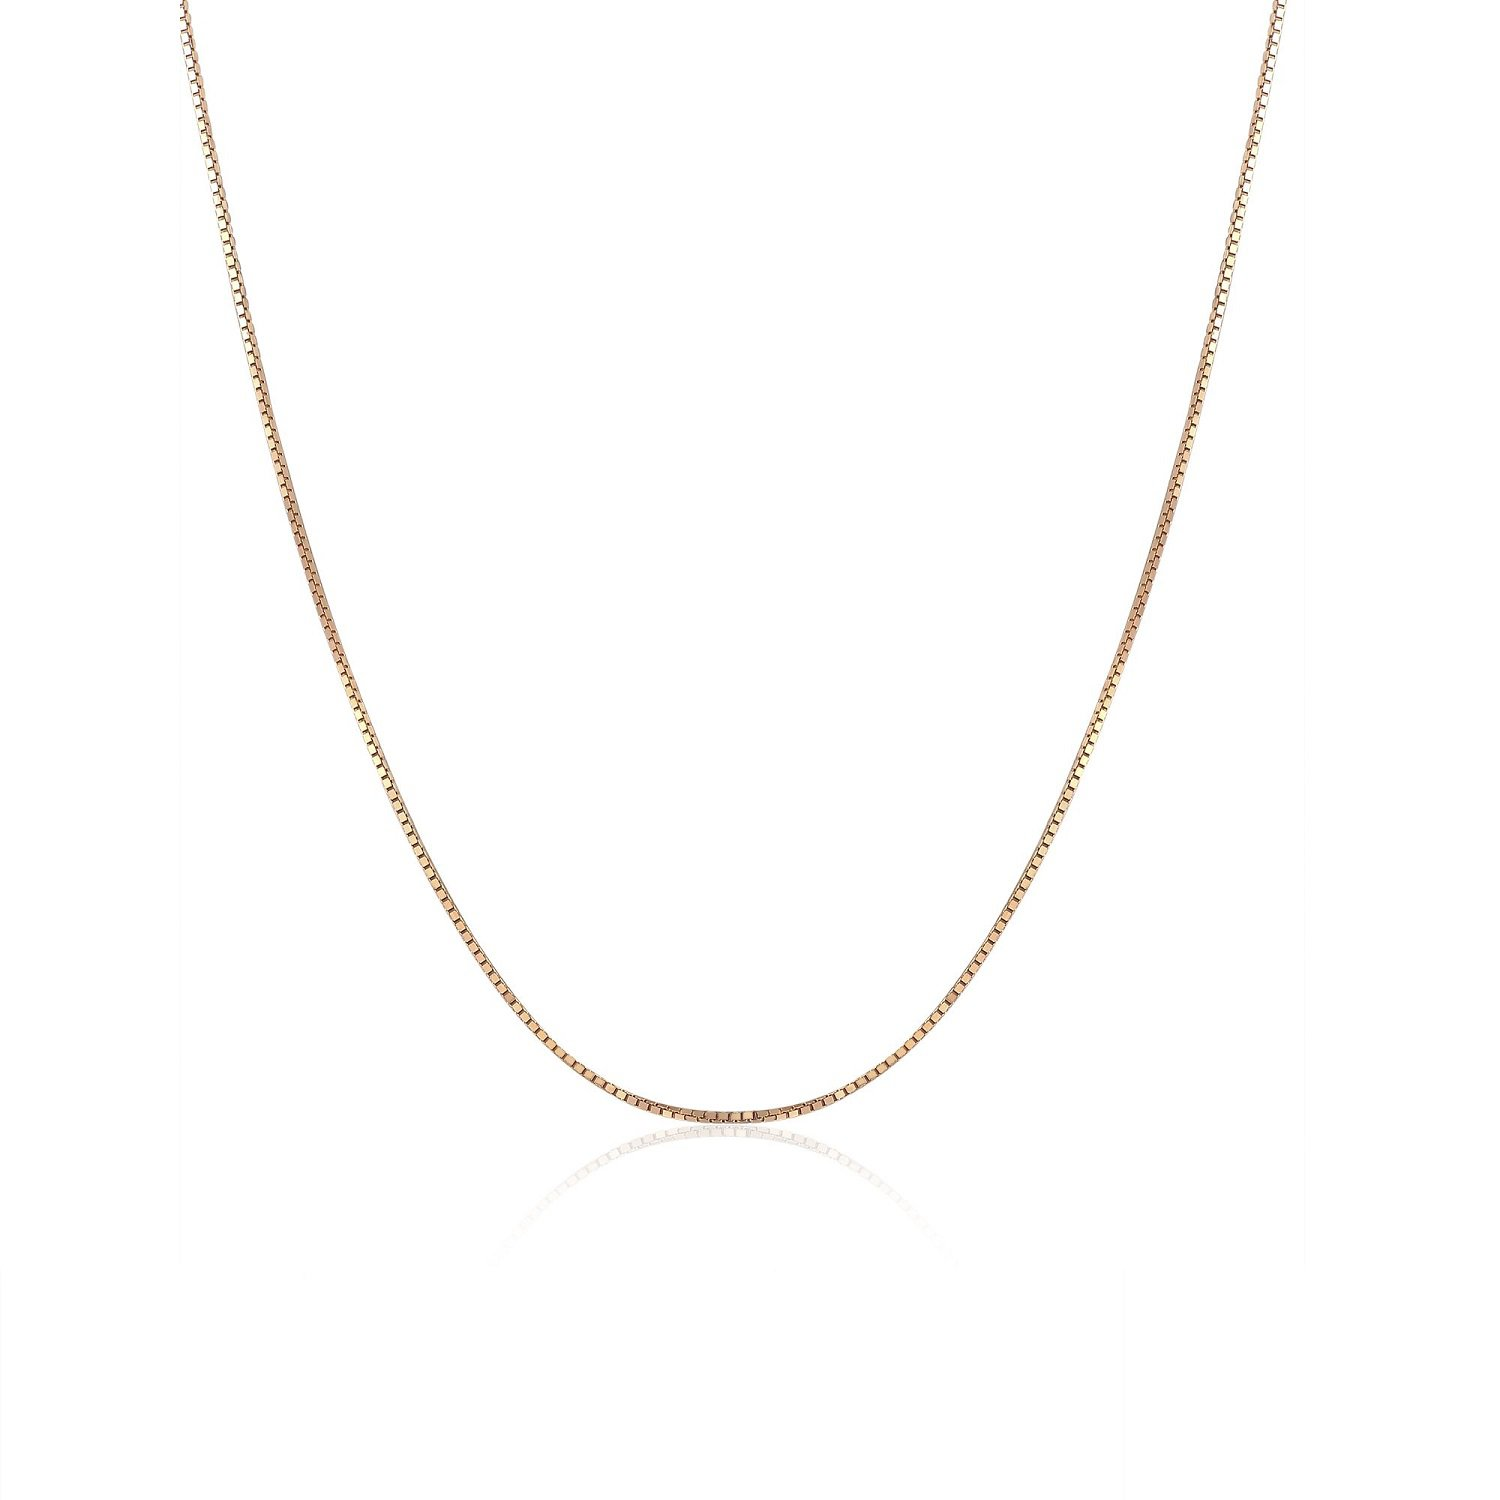 """18K Solid Rose Gold Classic Box Chain Necklace With Spring Ring Clasp, 16"""" A00881N_KR"""